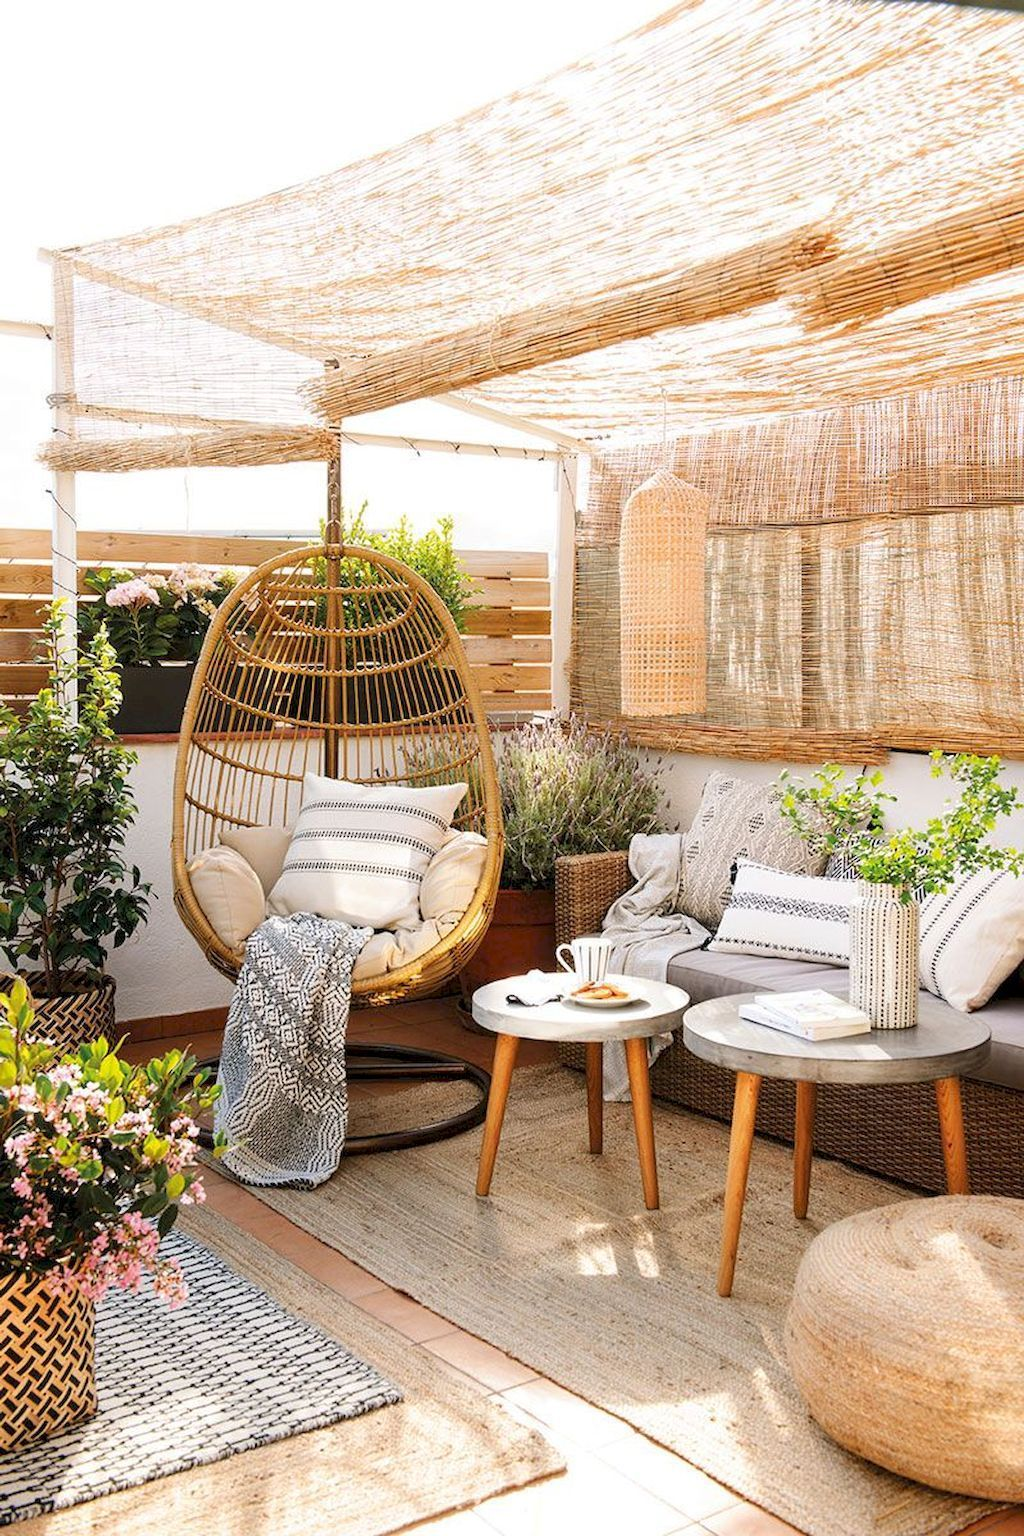 71 Wonderful Outdoor Patio Ideas Patio Design Small Outdoor Patios Patio